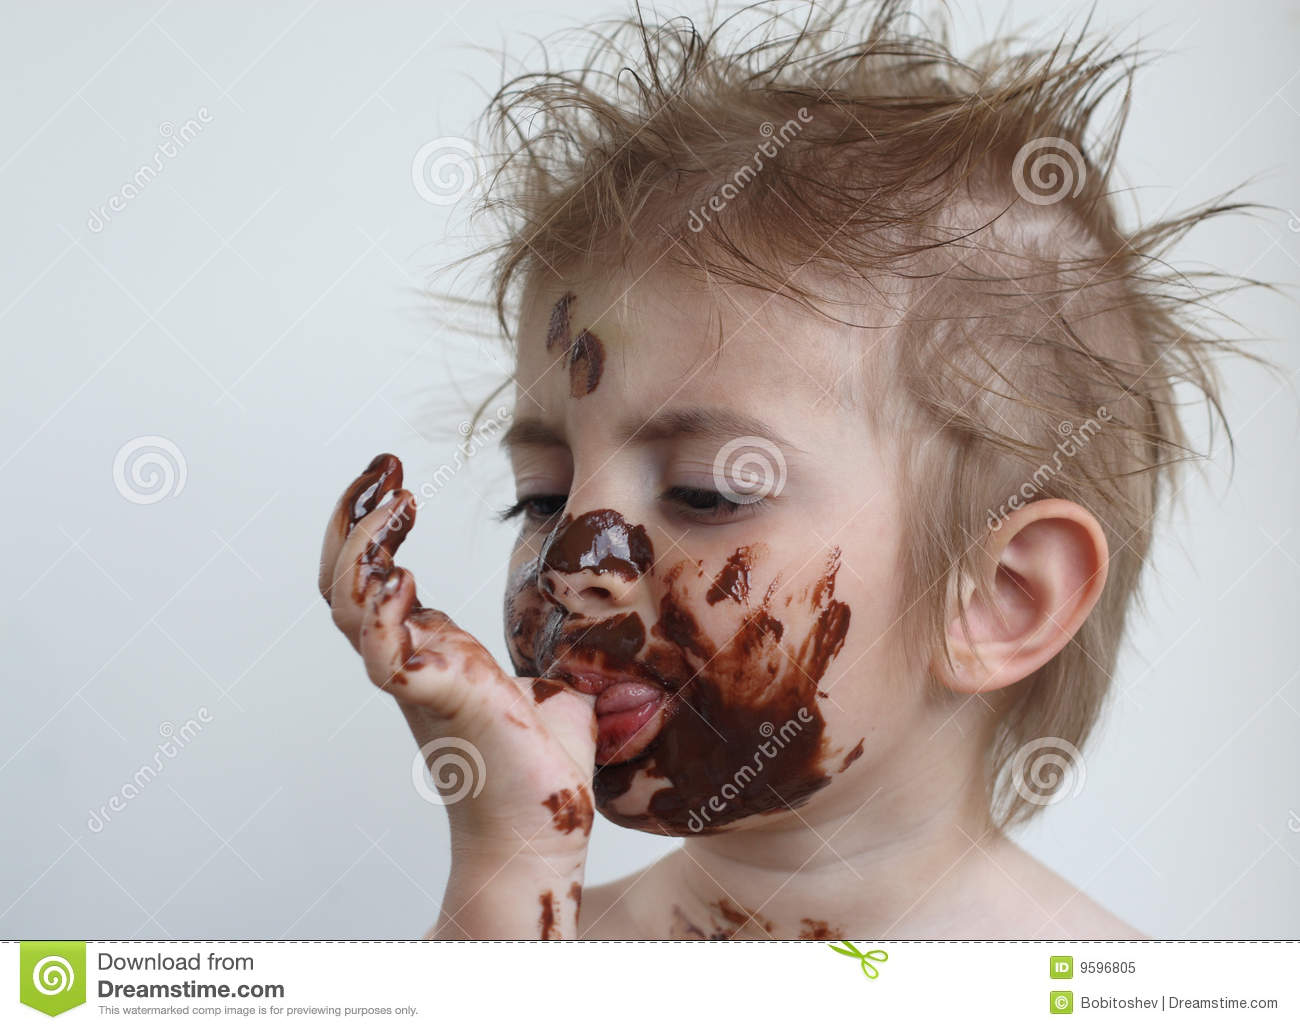 Girl Eating Chocolate Clipart - Clipart Kid